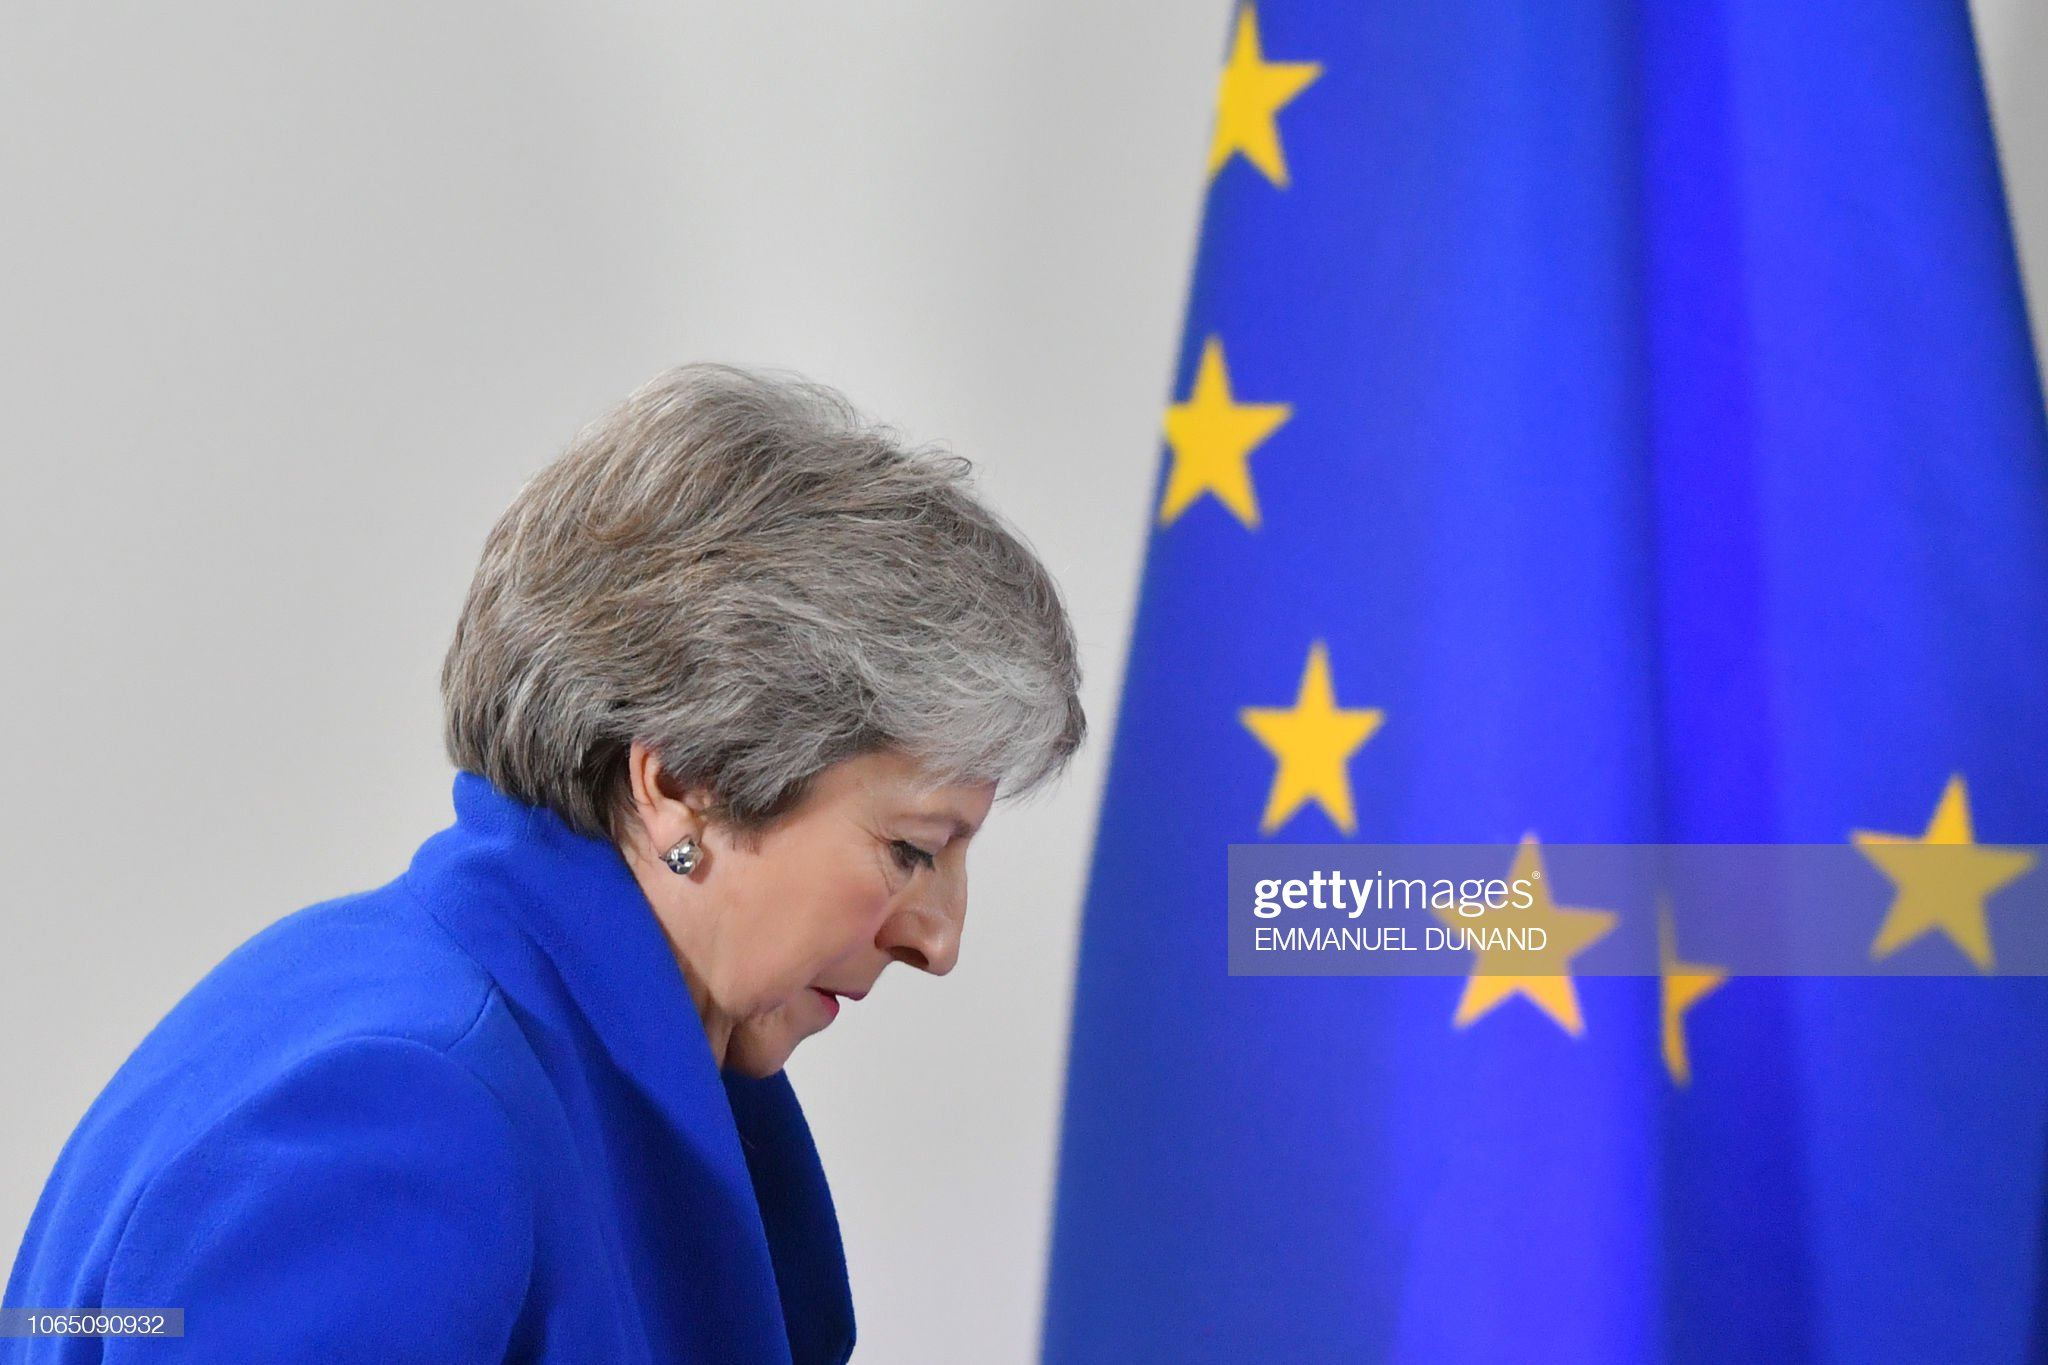 BELGIUM-EU-COUNCIL-BREXIT-POLITICS : News Photo